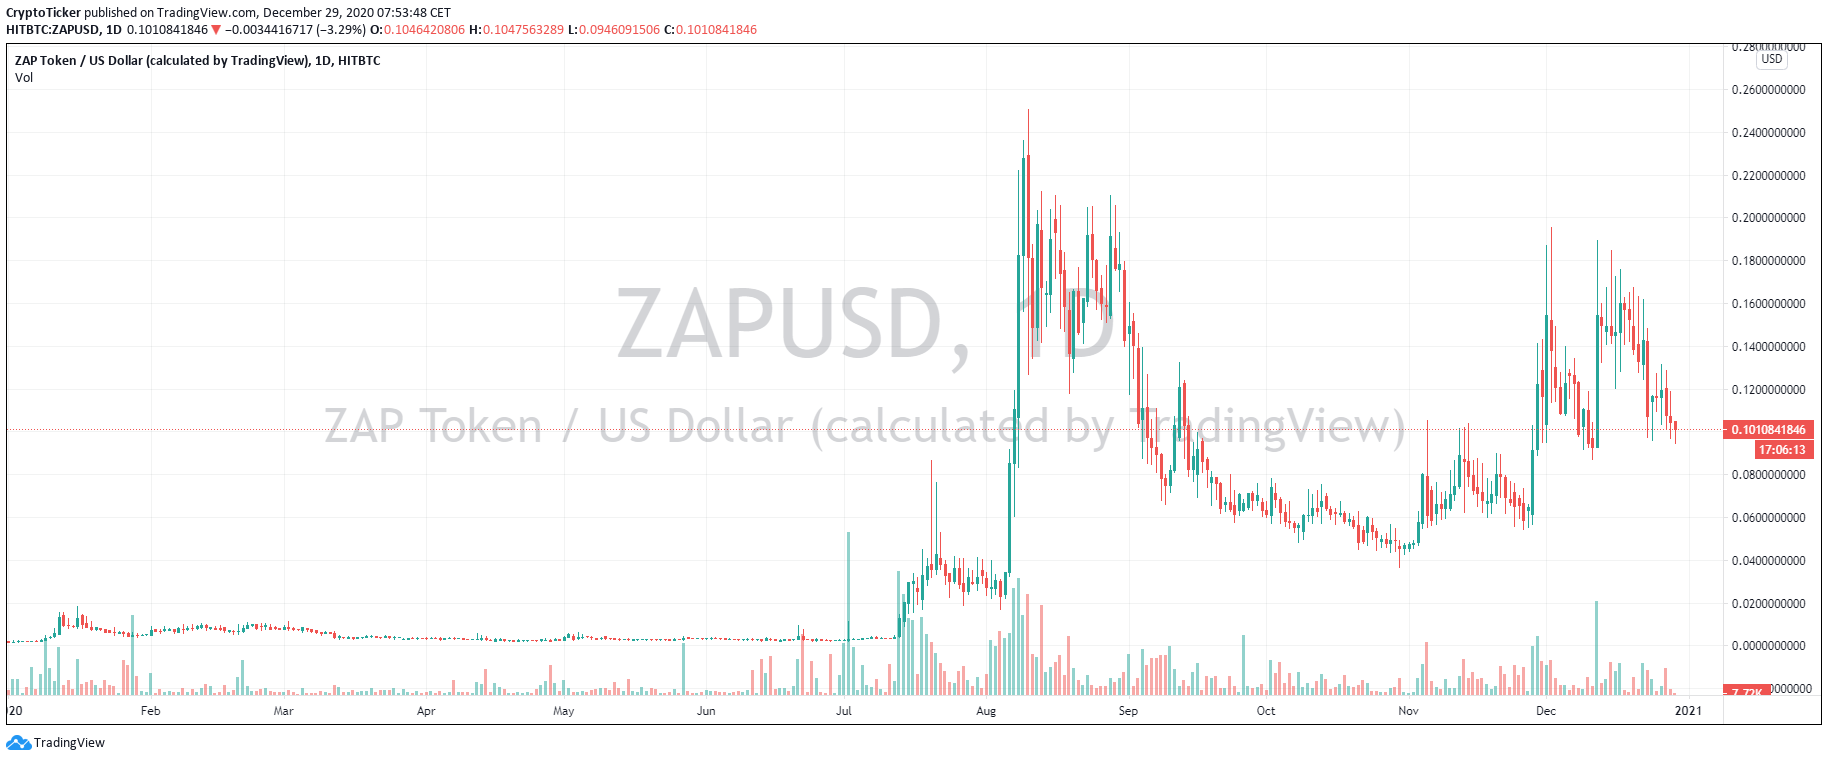 ZAP/USD 1-Day Chart of 2020